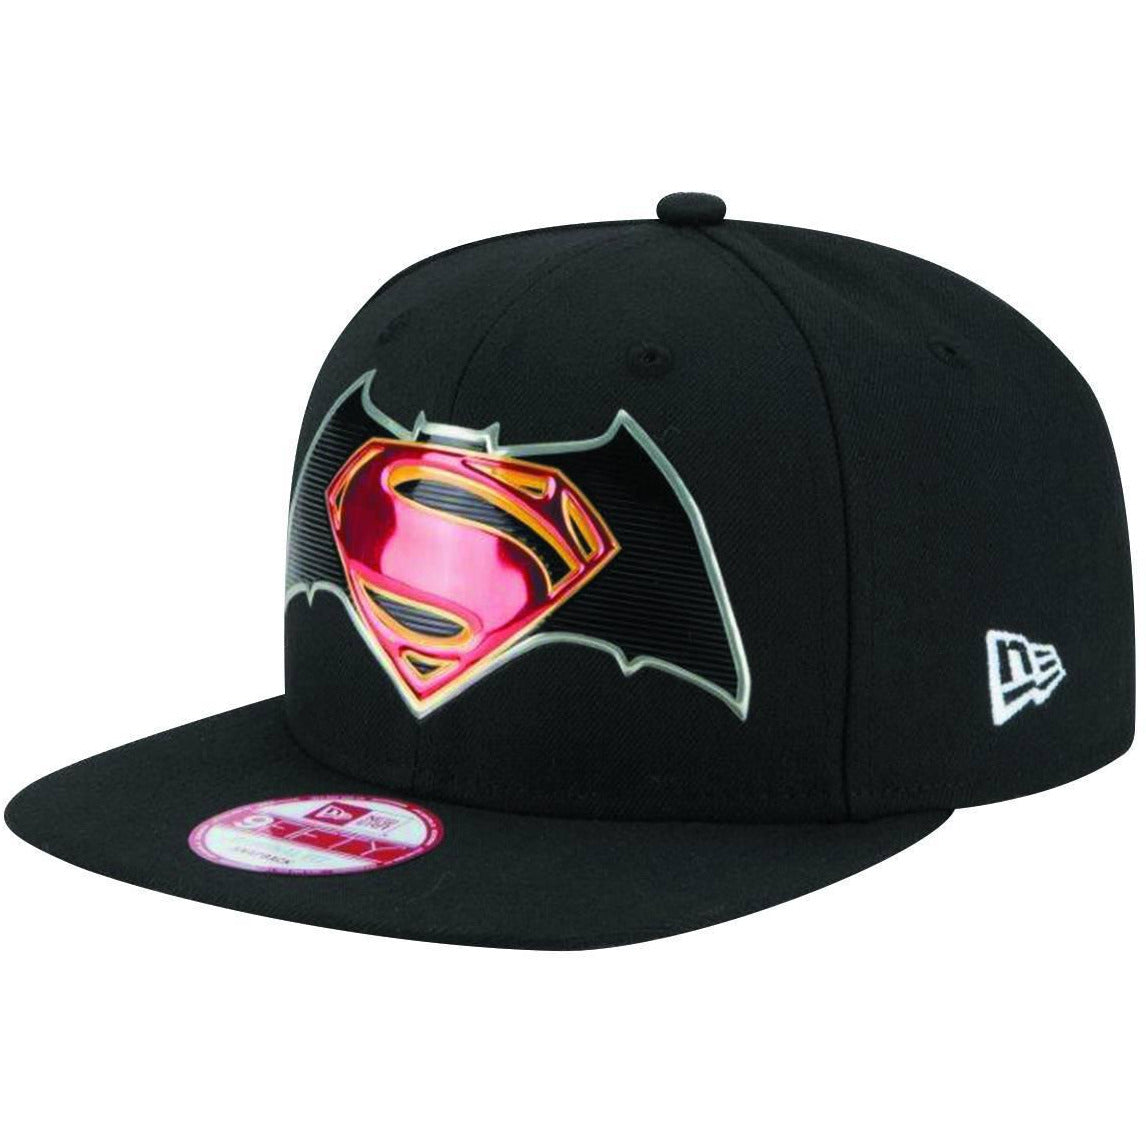 BATMAN V SUPERMAN SNAPBACK CAP